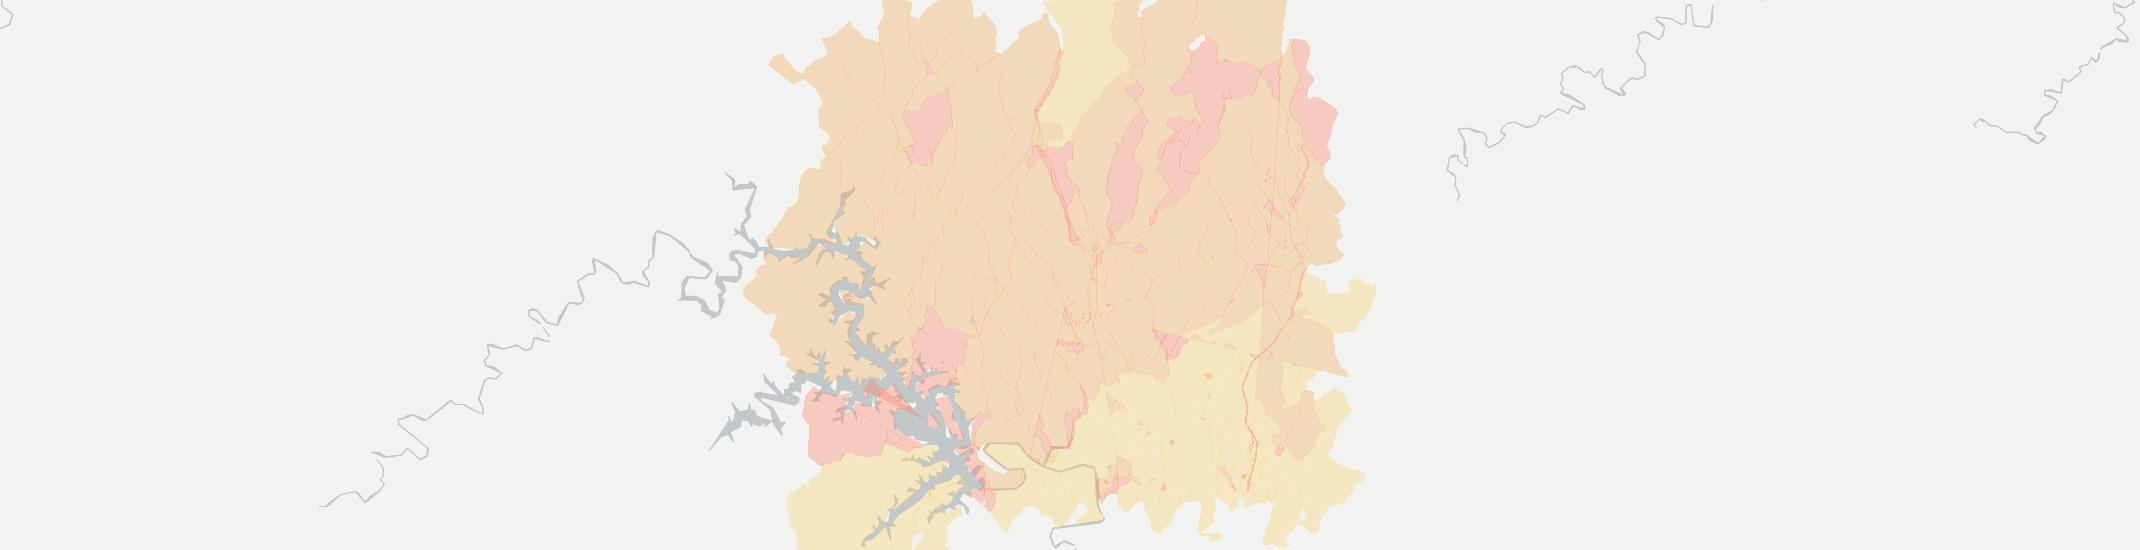 Henry Internet Competition Map. Click for interactive map.